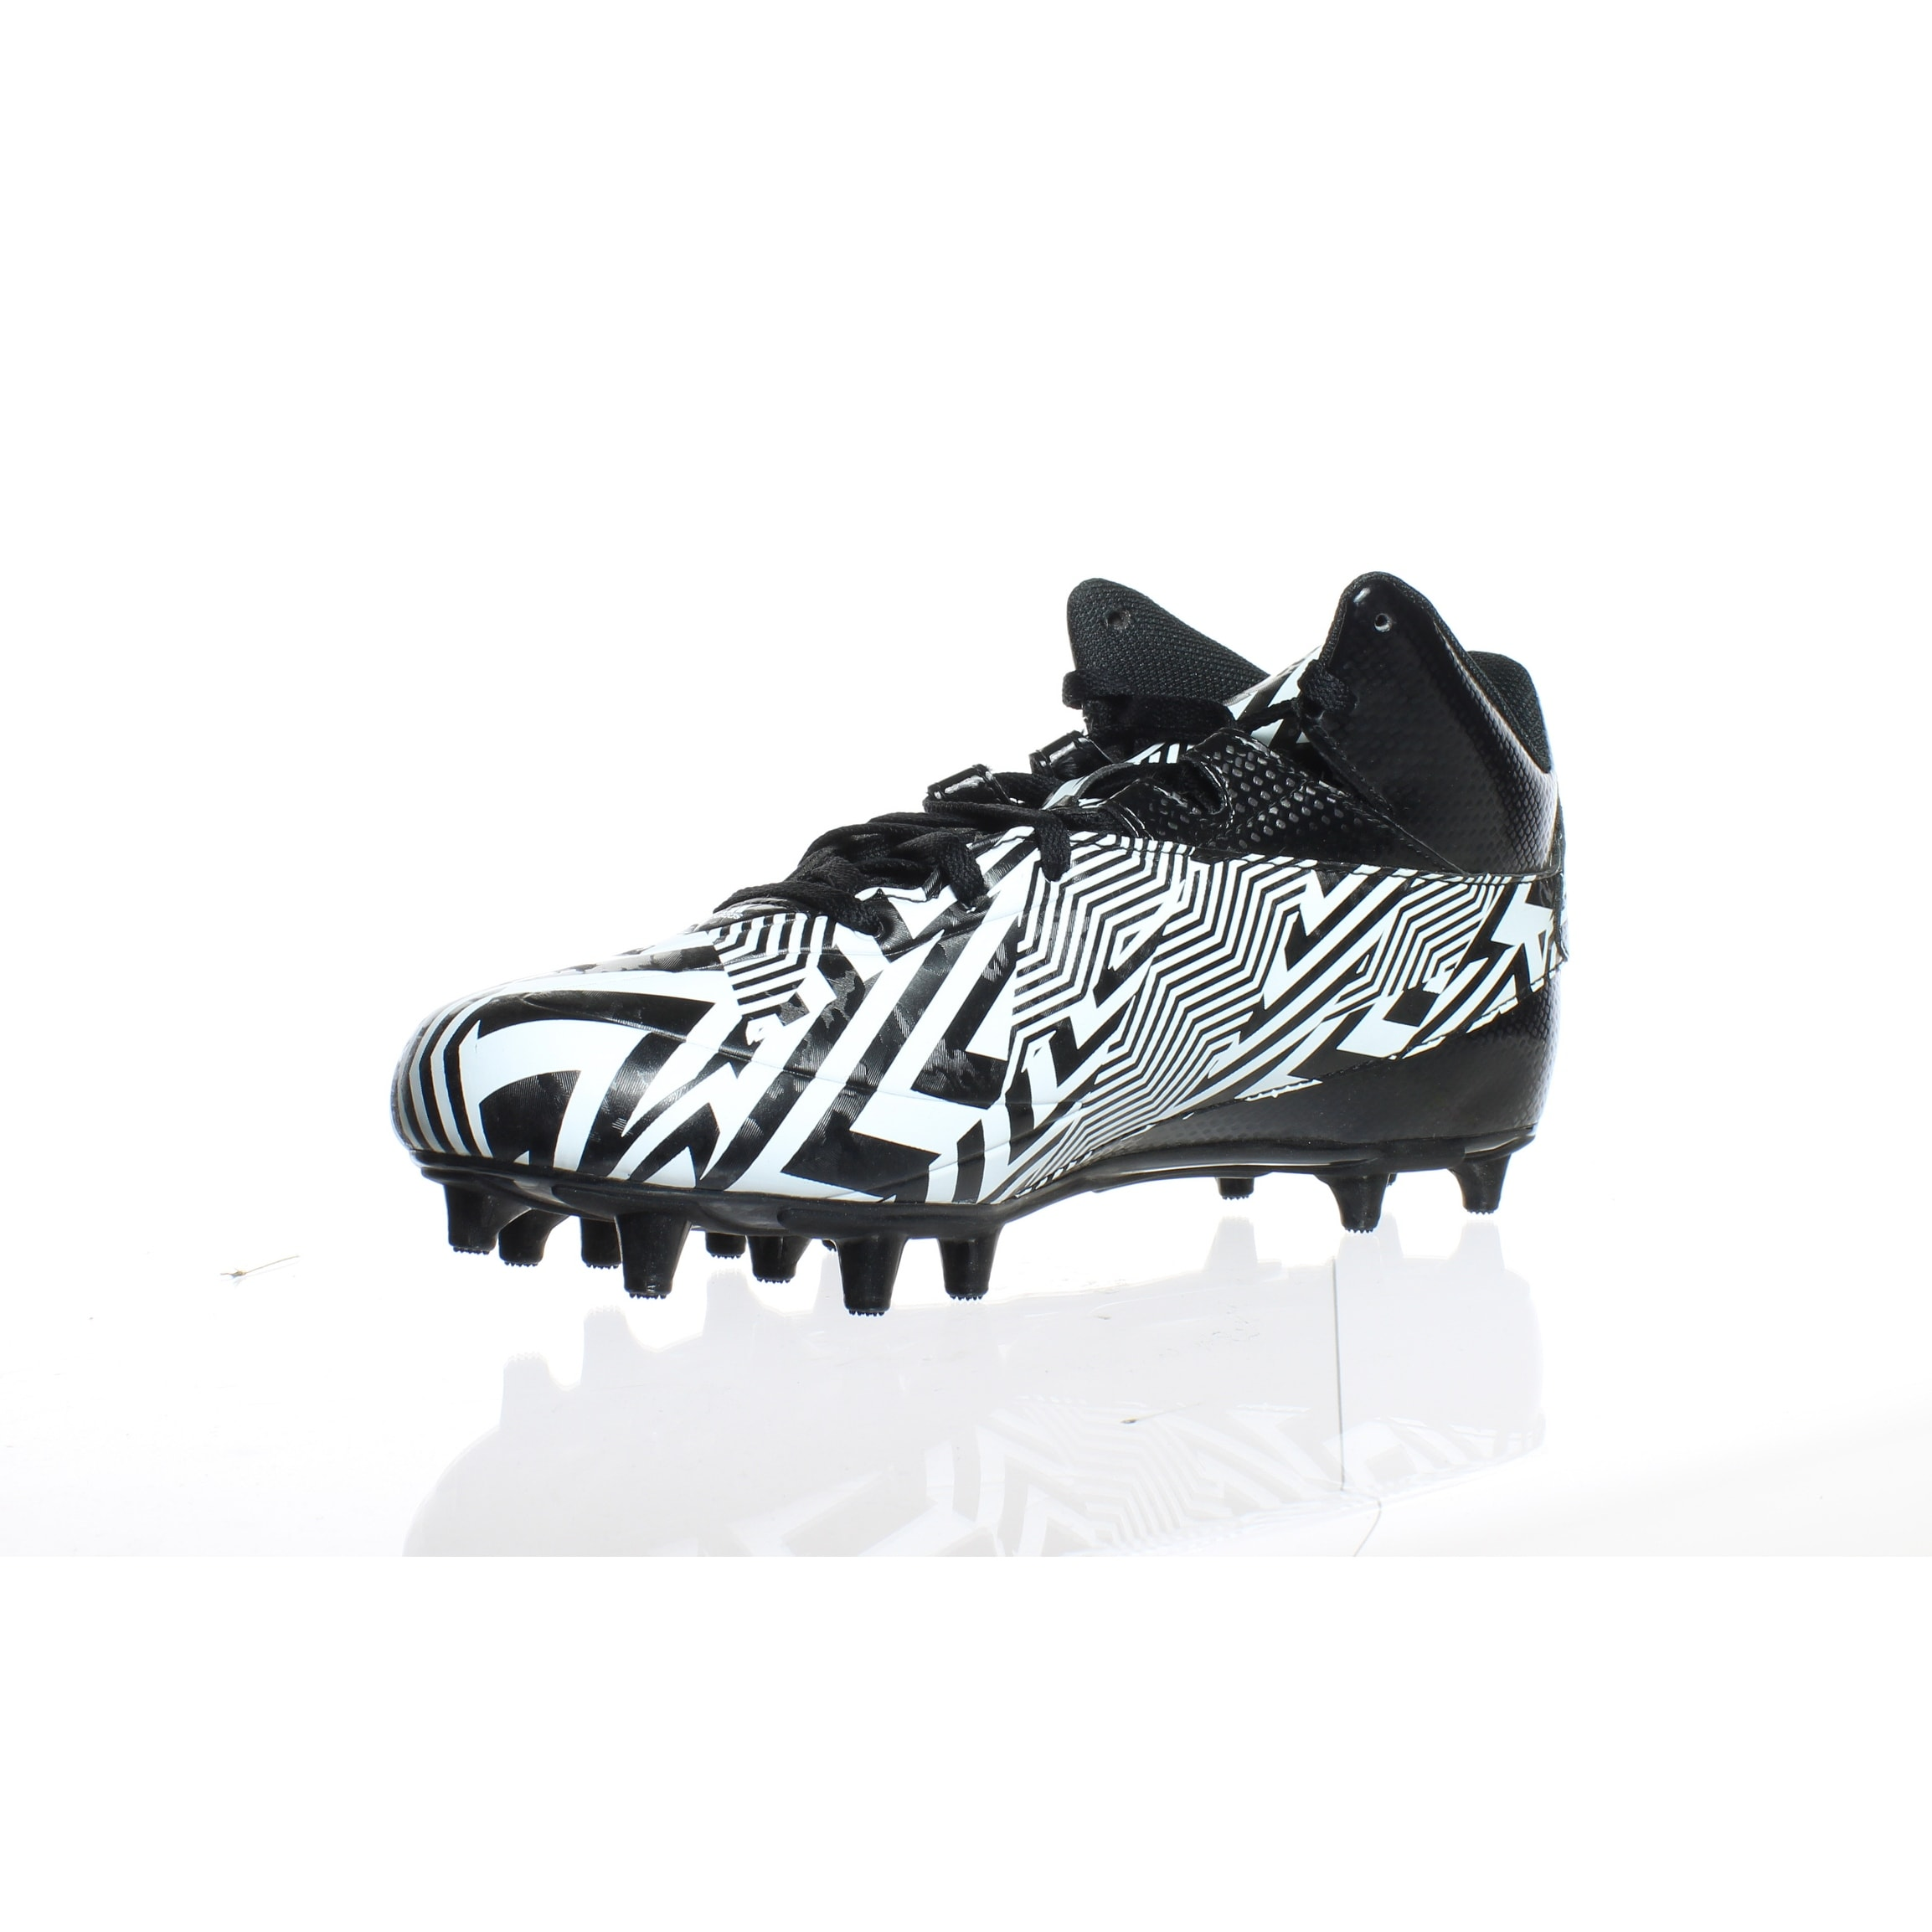 the best attitude 8274f deec3 Shop Adidas Mens Filthyspeed Mid-M BlackPlatinum Football Cleats Size 9 -  Free Shipping On Orders Over 45 - Overstock.com - 25534395